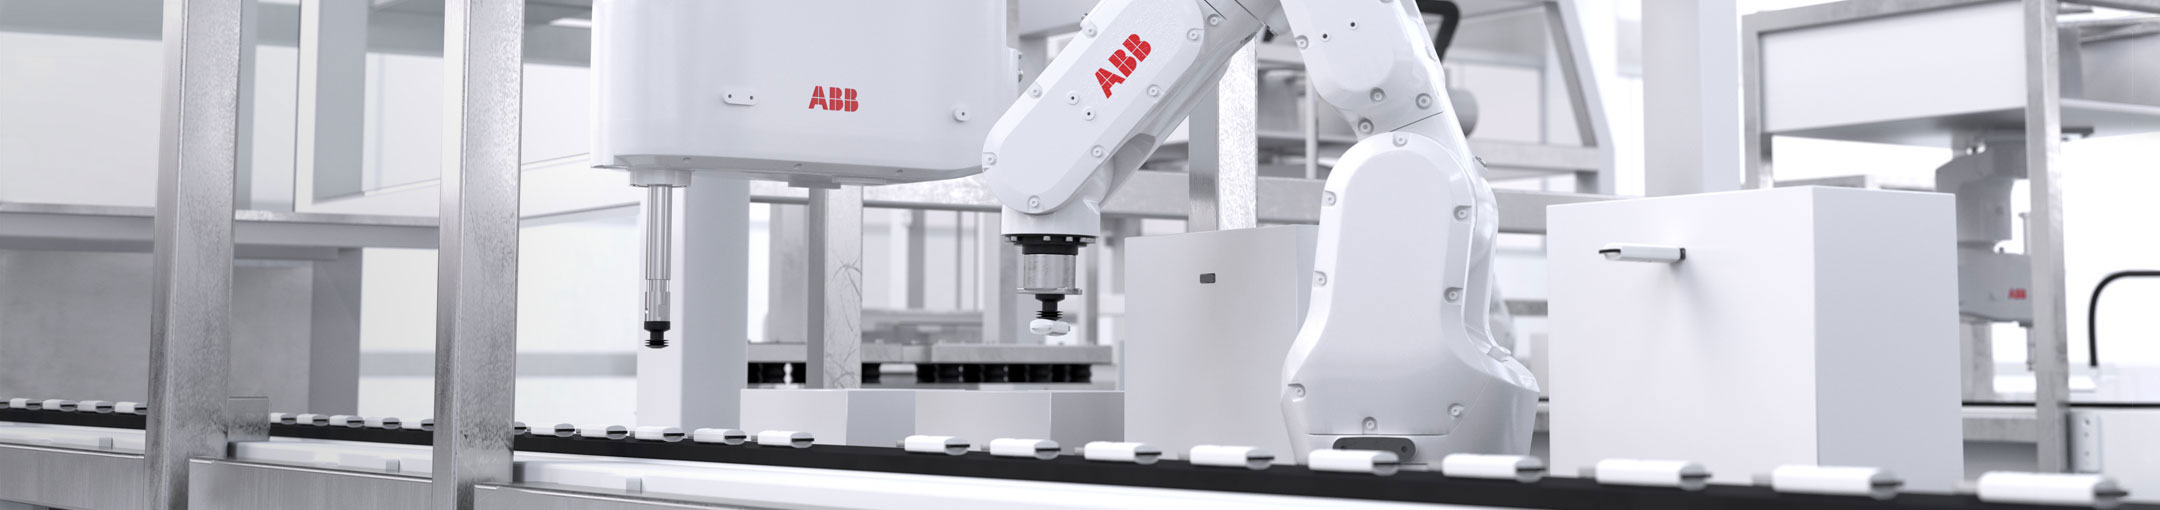 A mechanical arm with a red ABB logo appears to be placing items on a conveyor belt.